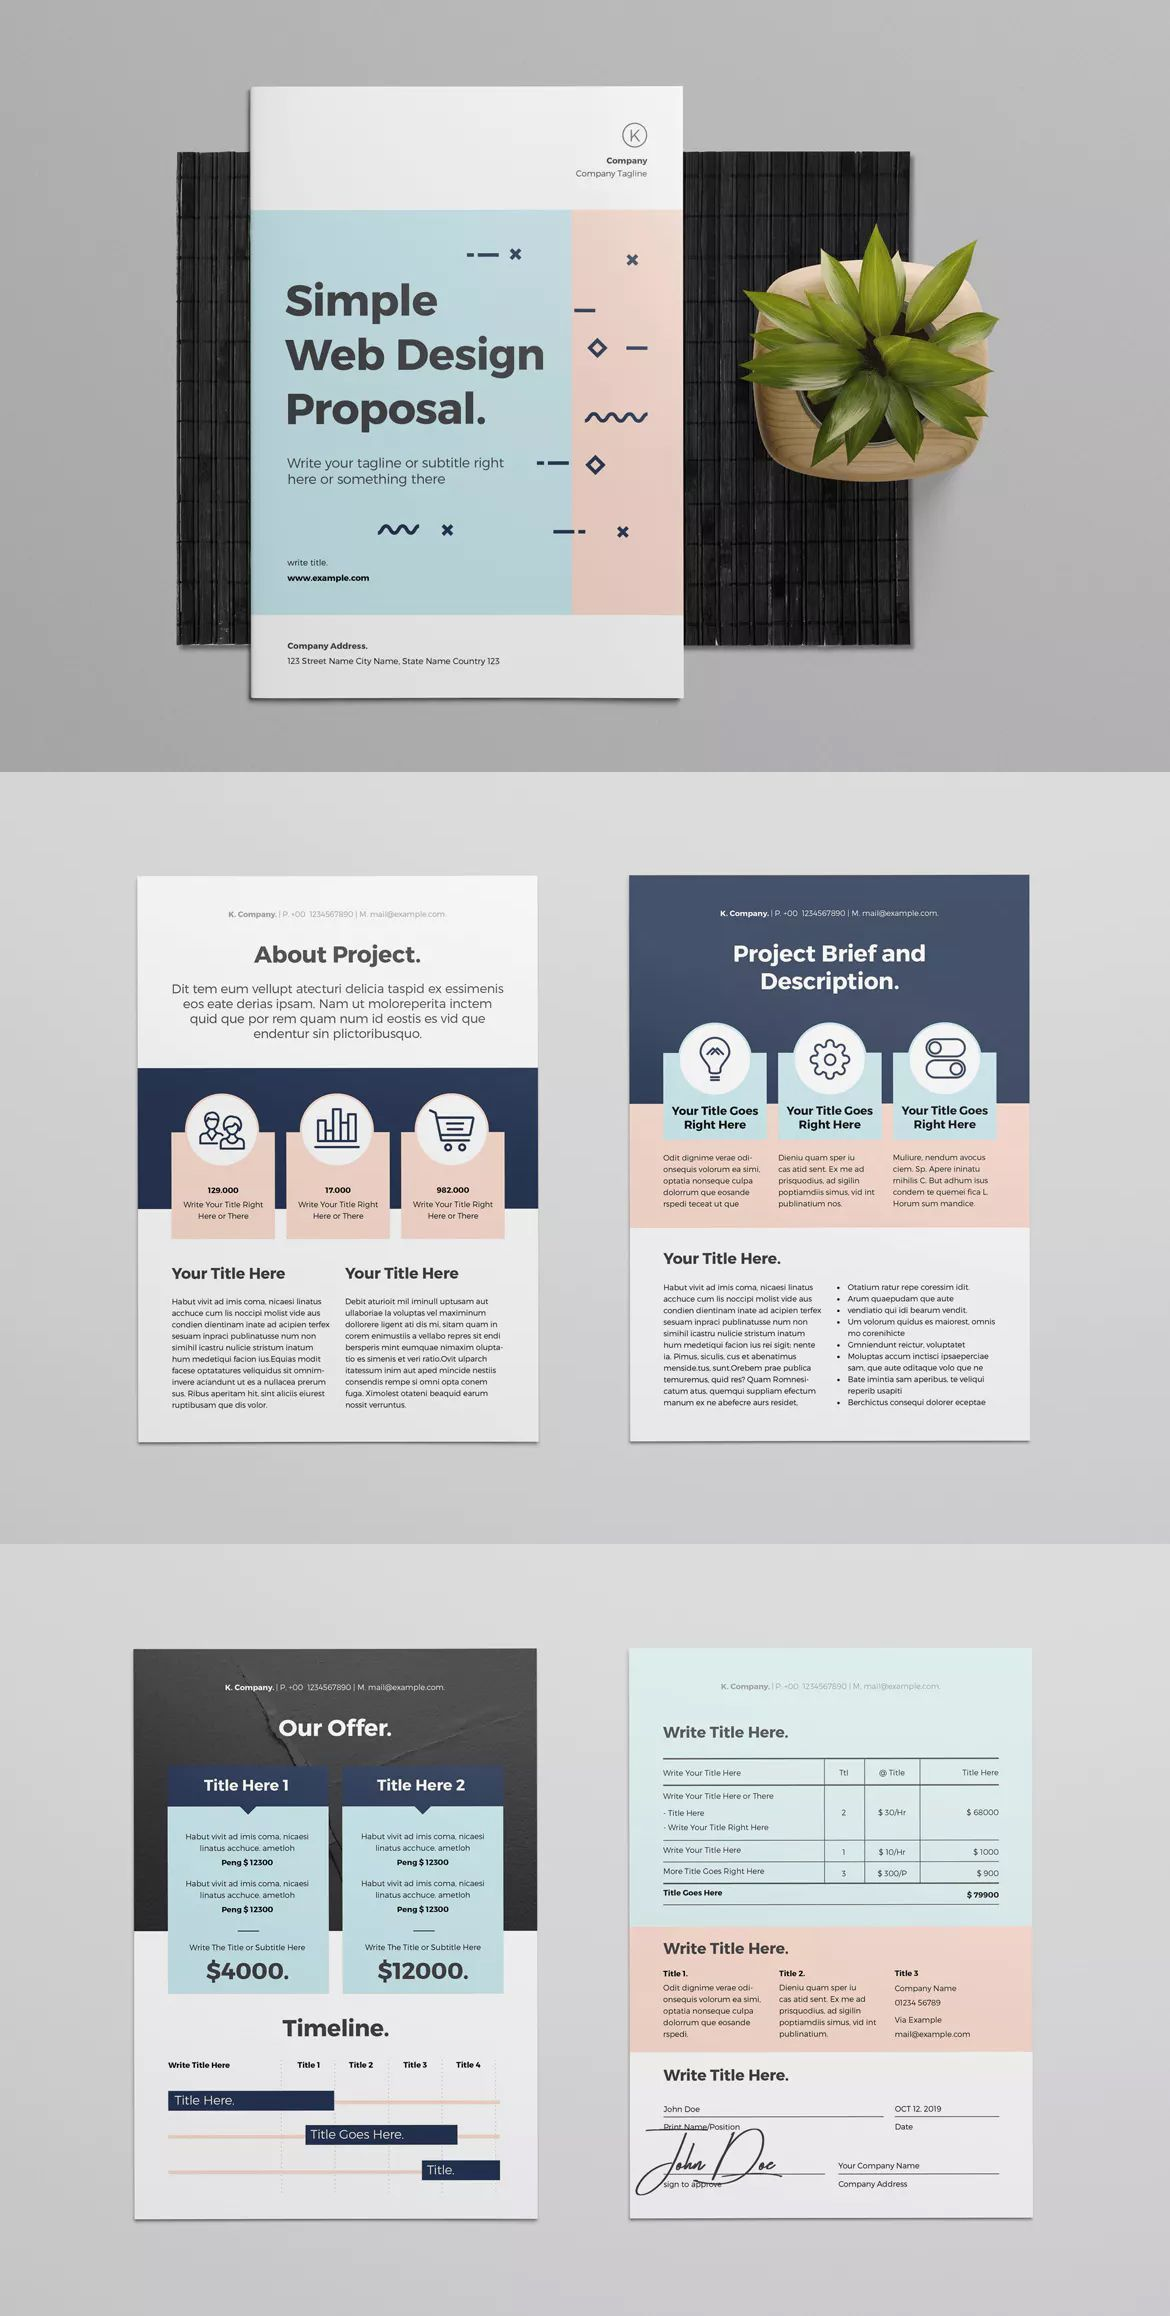 002 Rare Web Design Proposal Template High Definition  Designer Writing Word Document SimpleFull